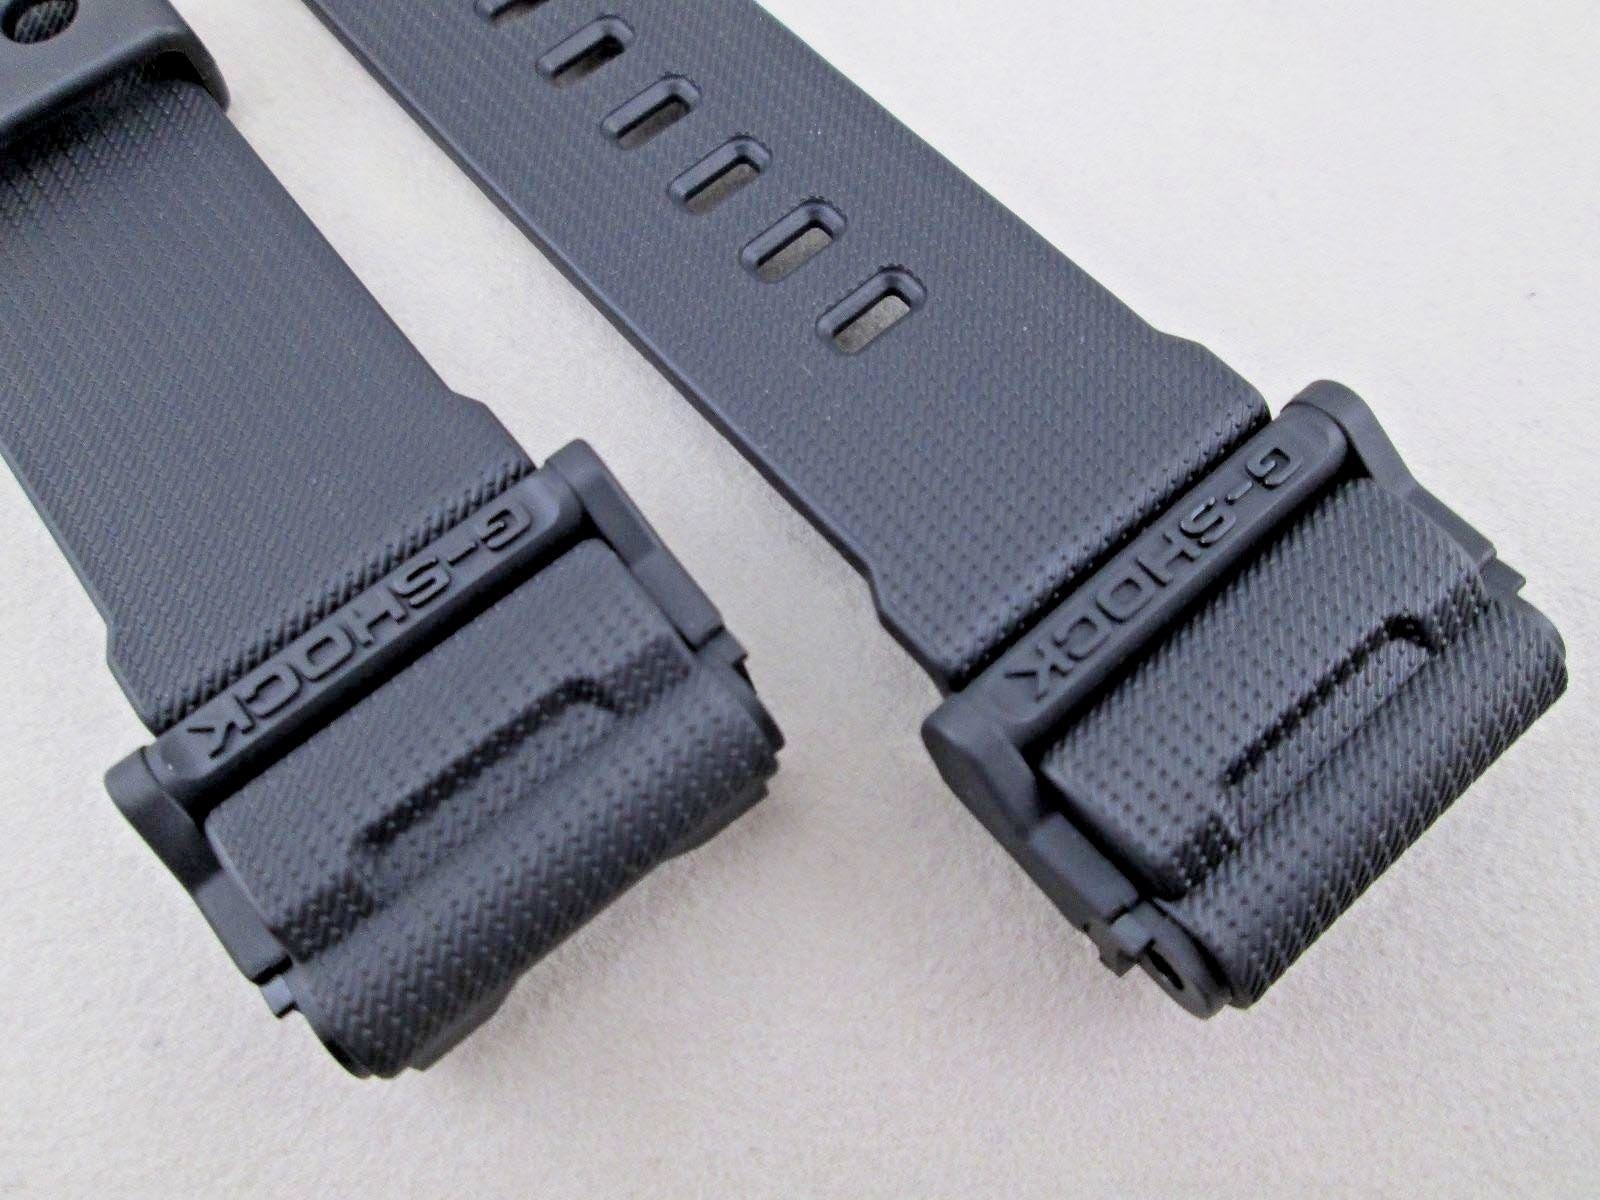 Buy G Shock Replacement Band Gd 400mb 1 Part 10489031 Casio